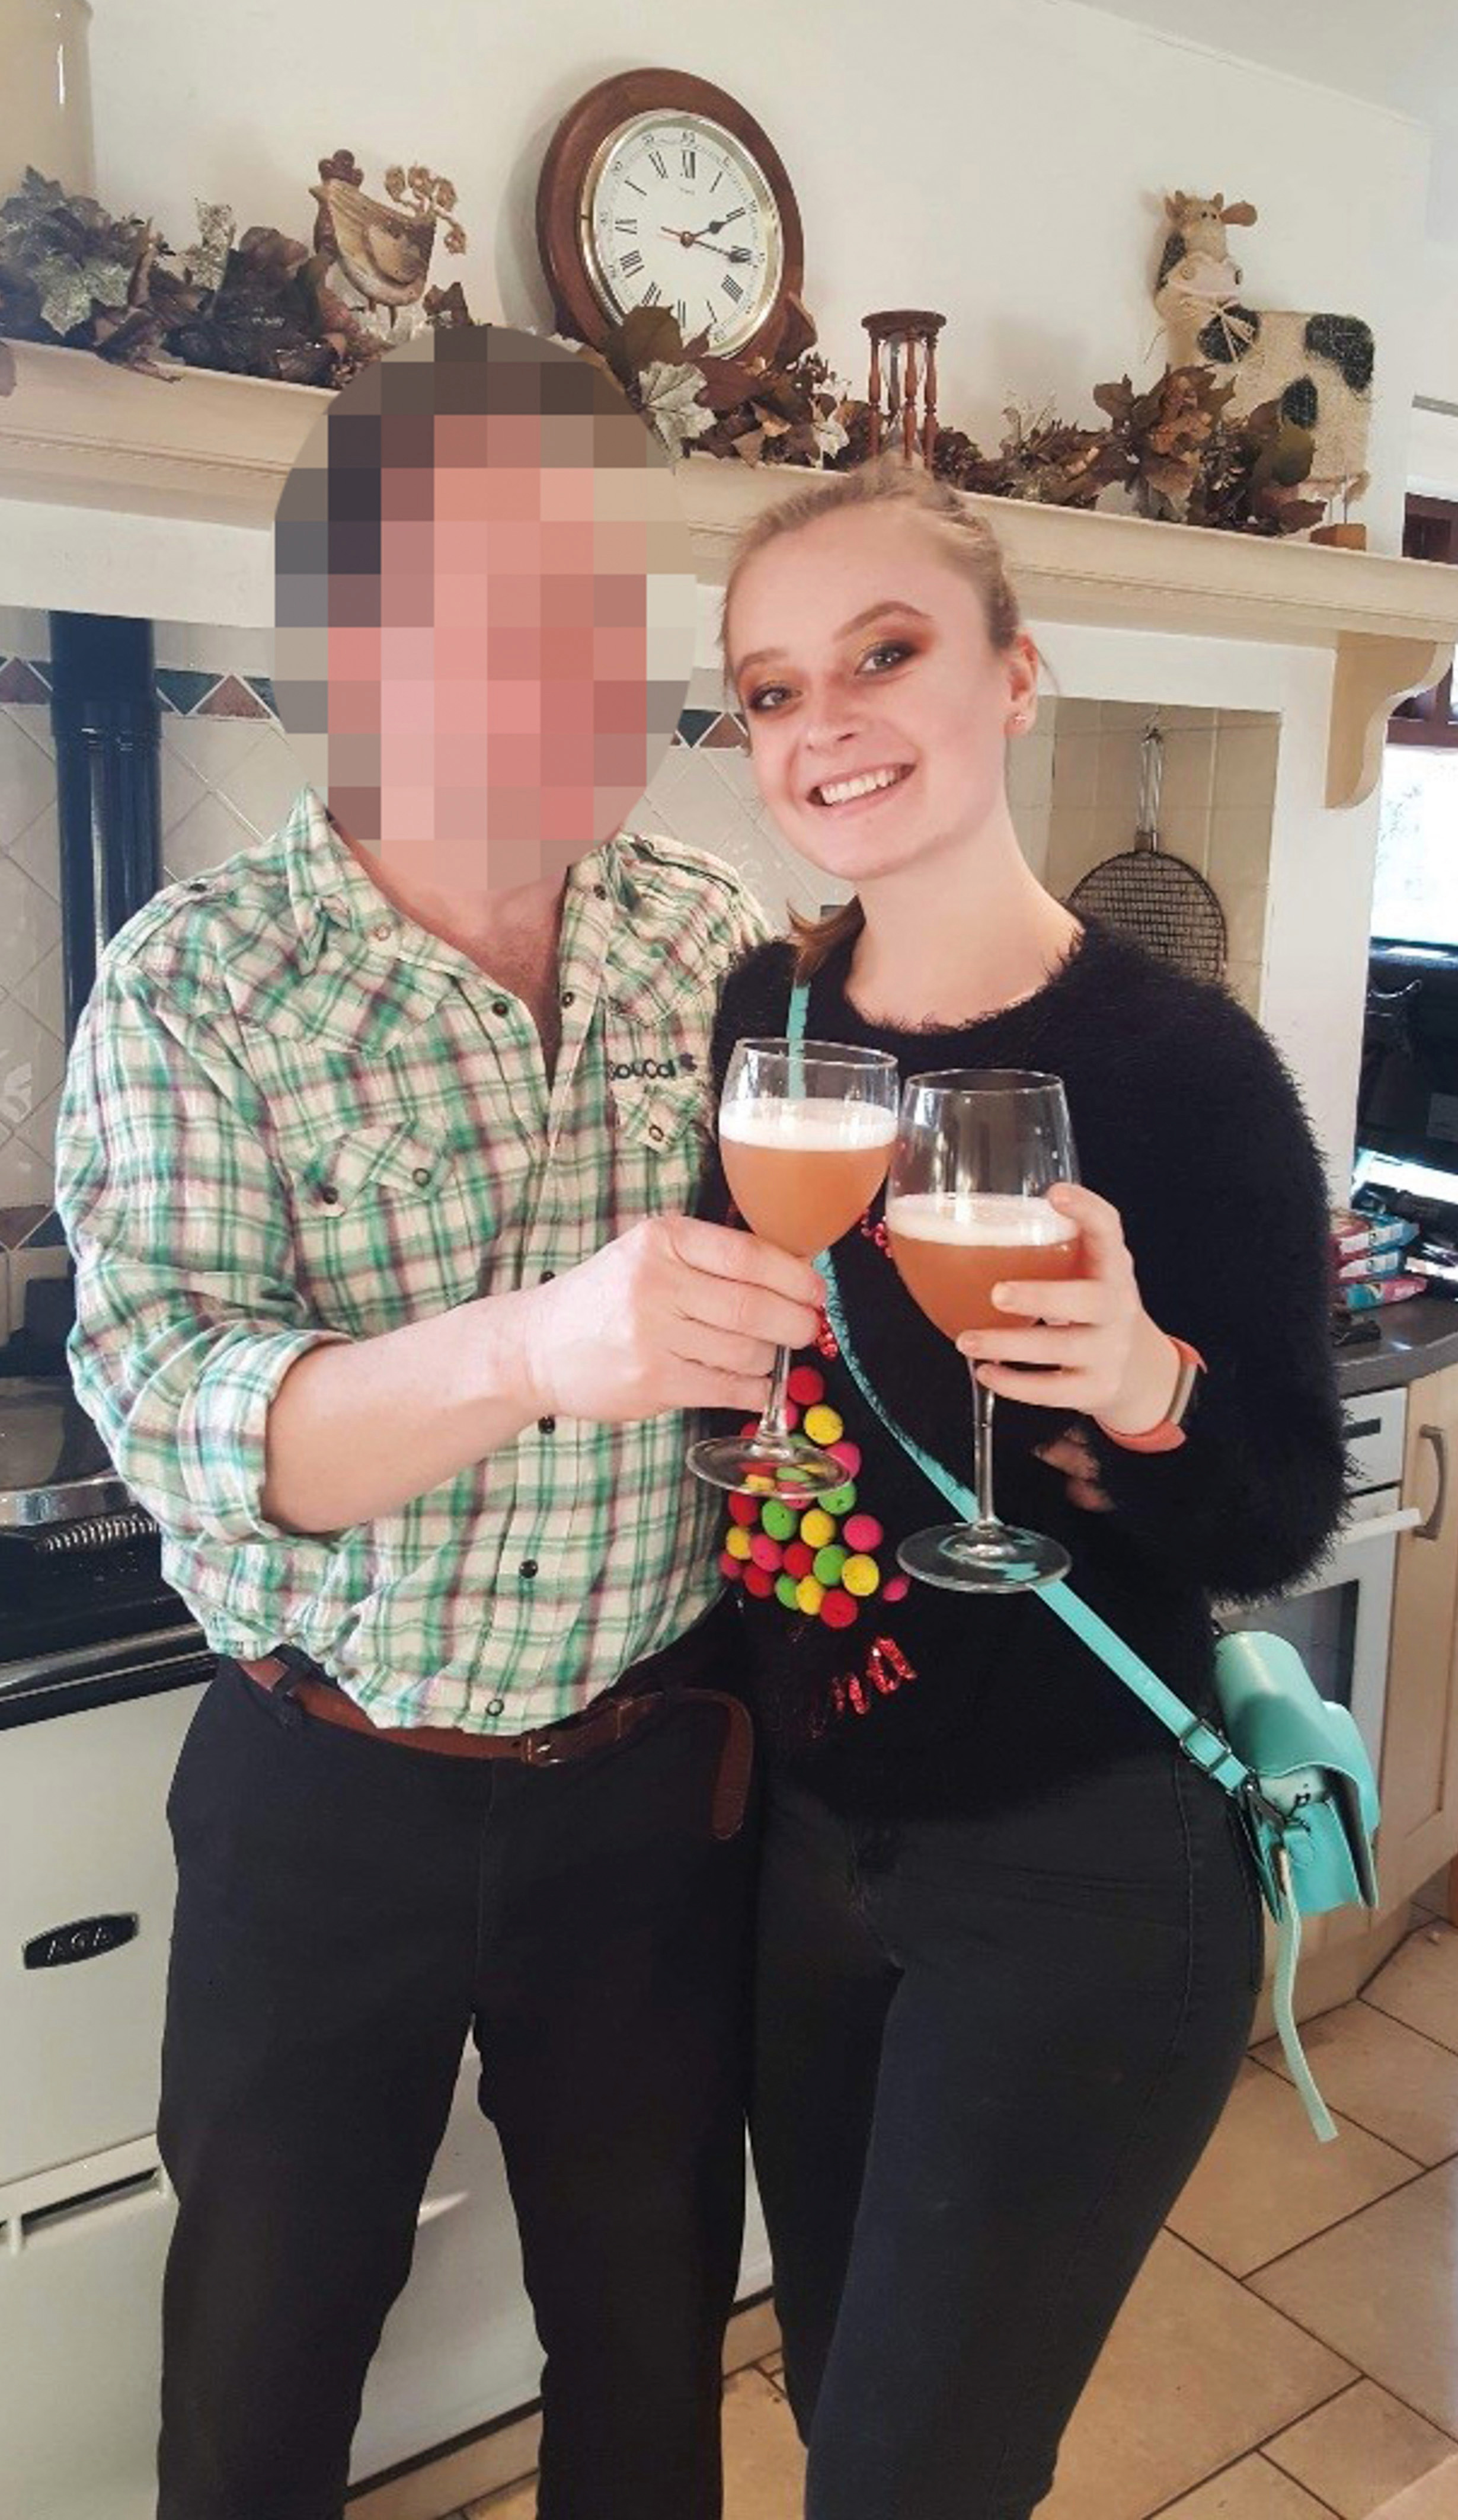 A date with one of her sugar daddies would normally consist of dinner and drinks - which costs upwards of £100